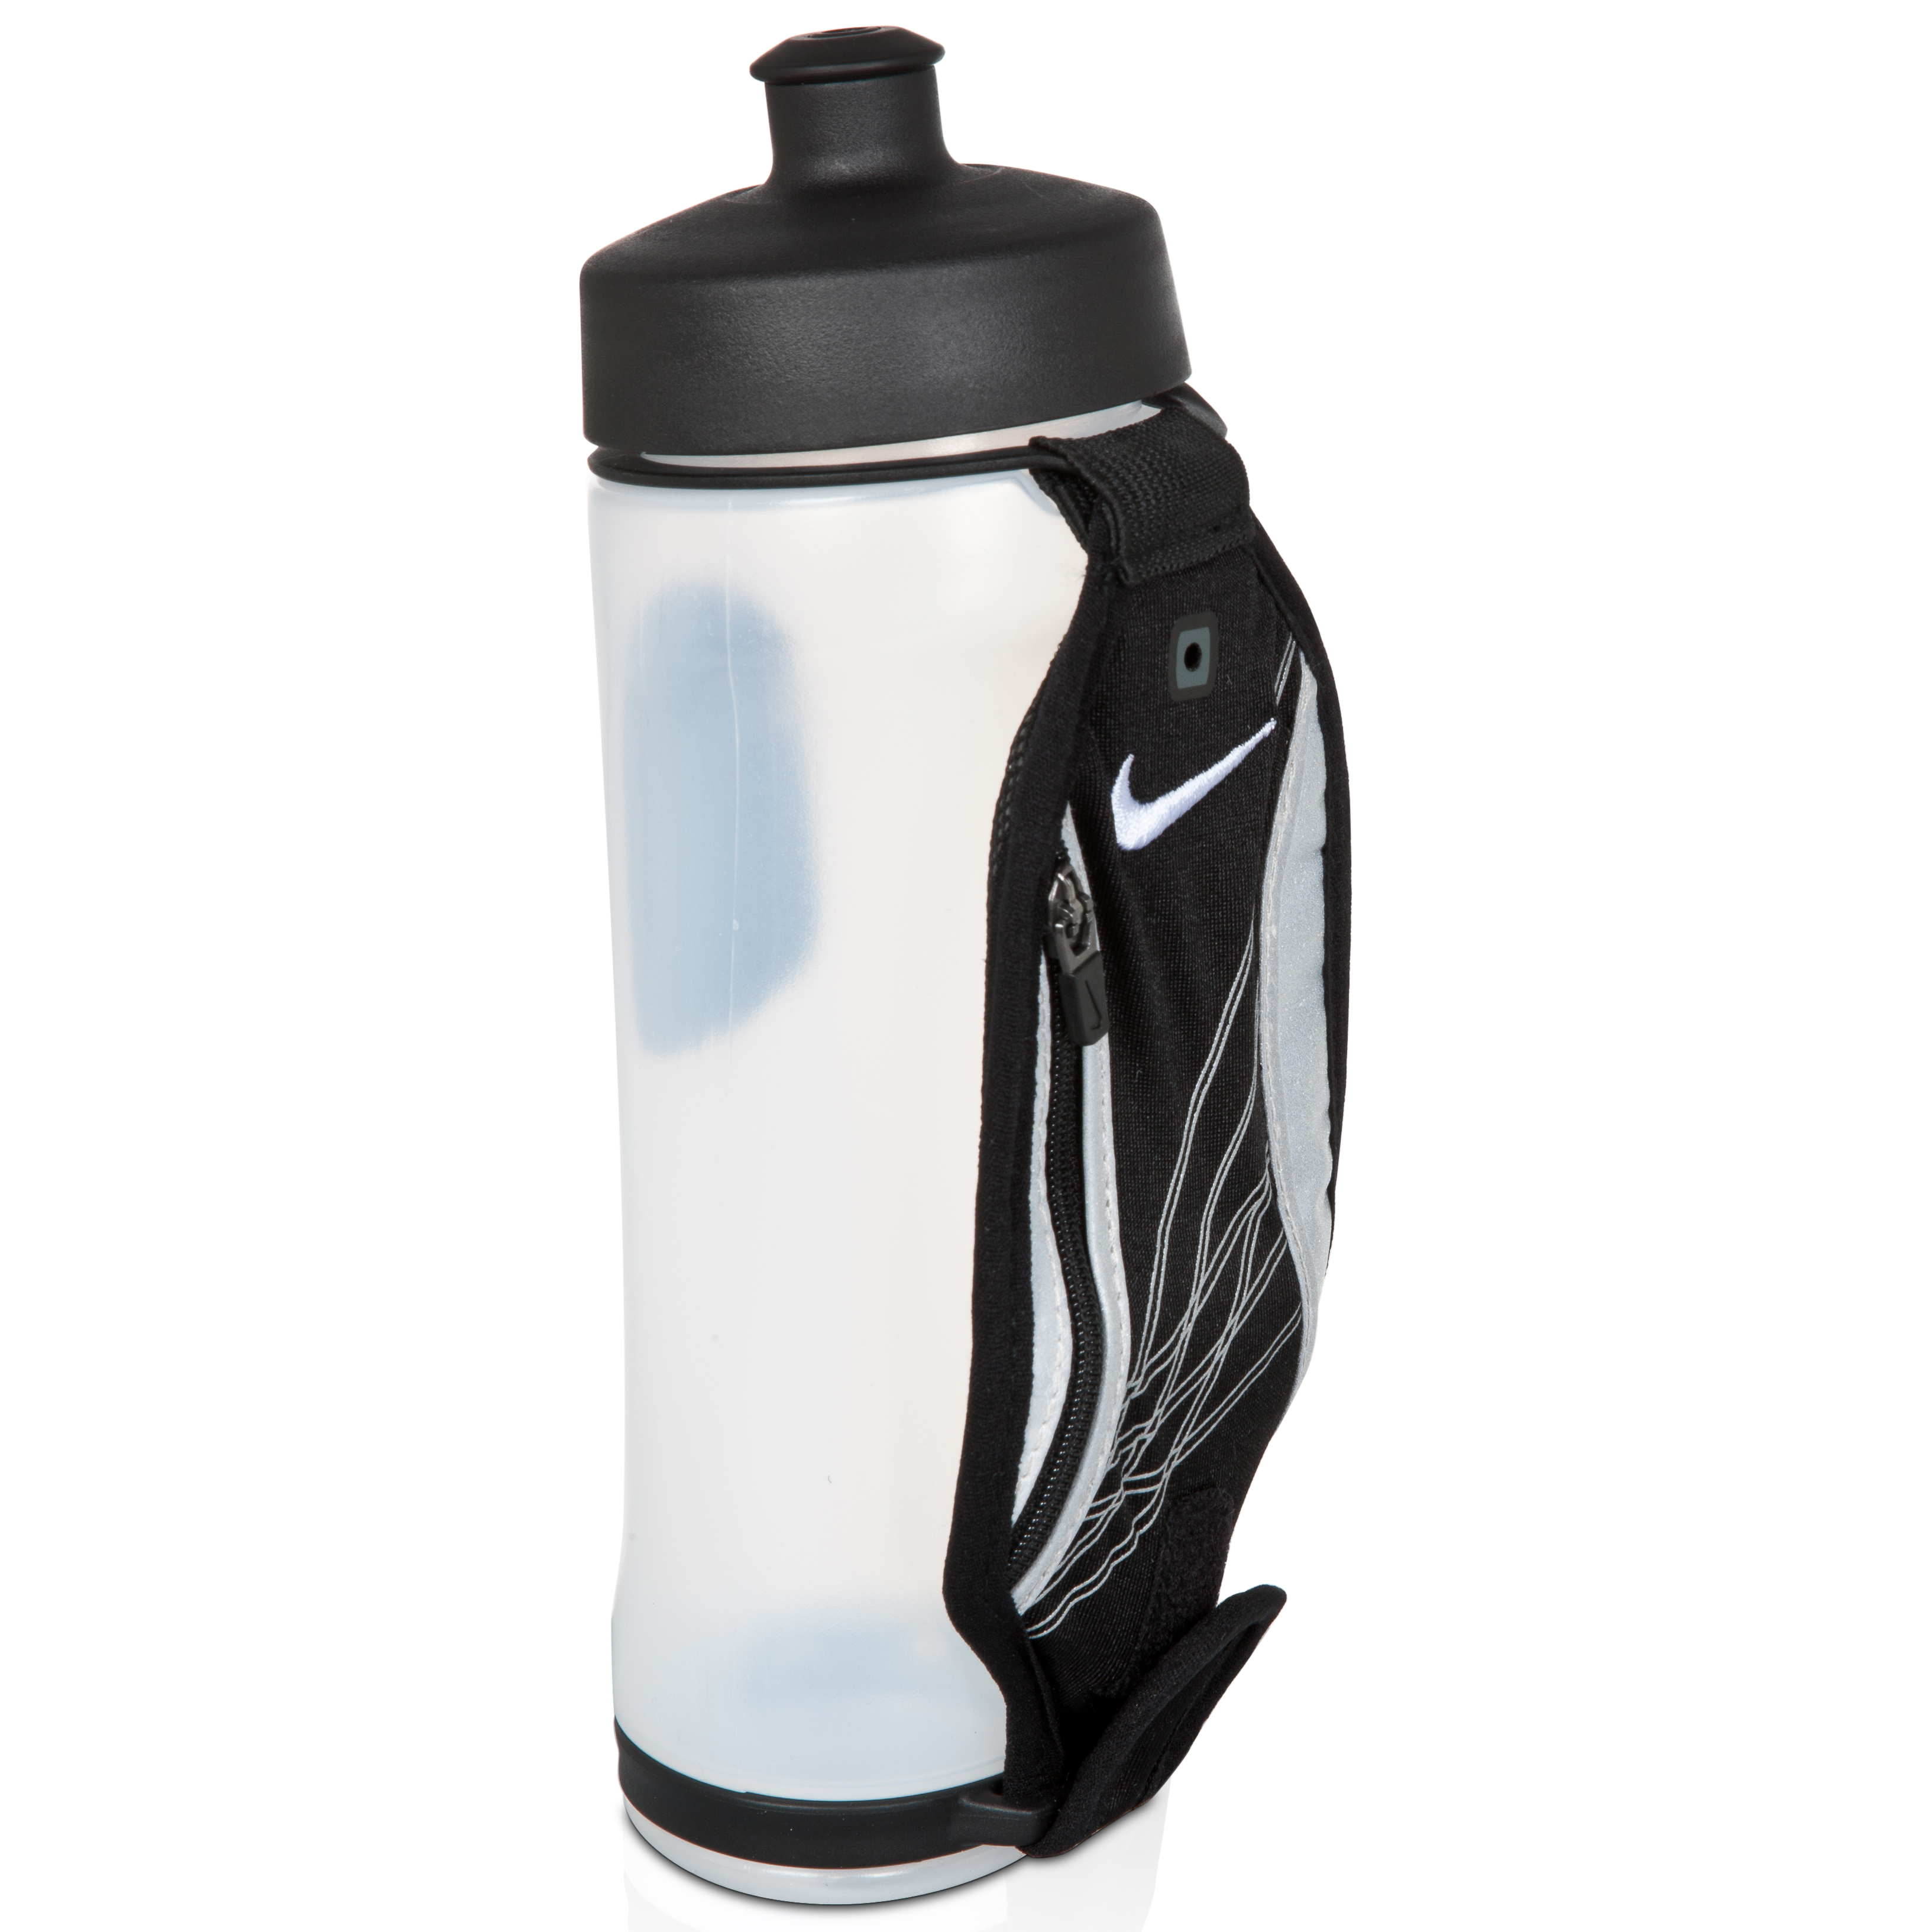 Nike Lightweight Running Hand-Held Water Bottle - Black/White